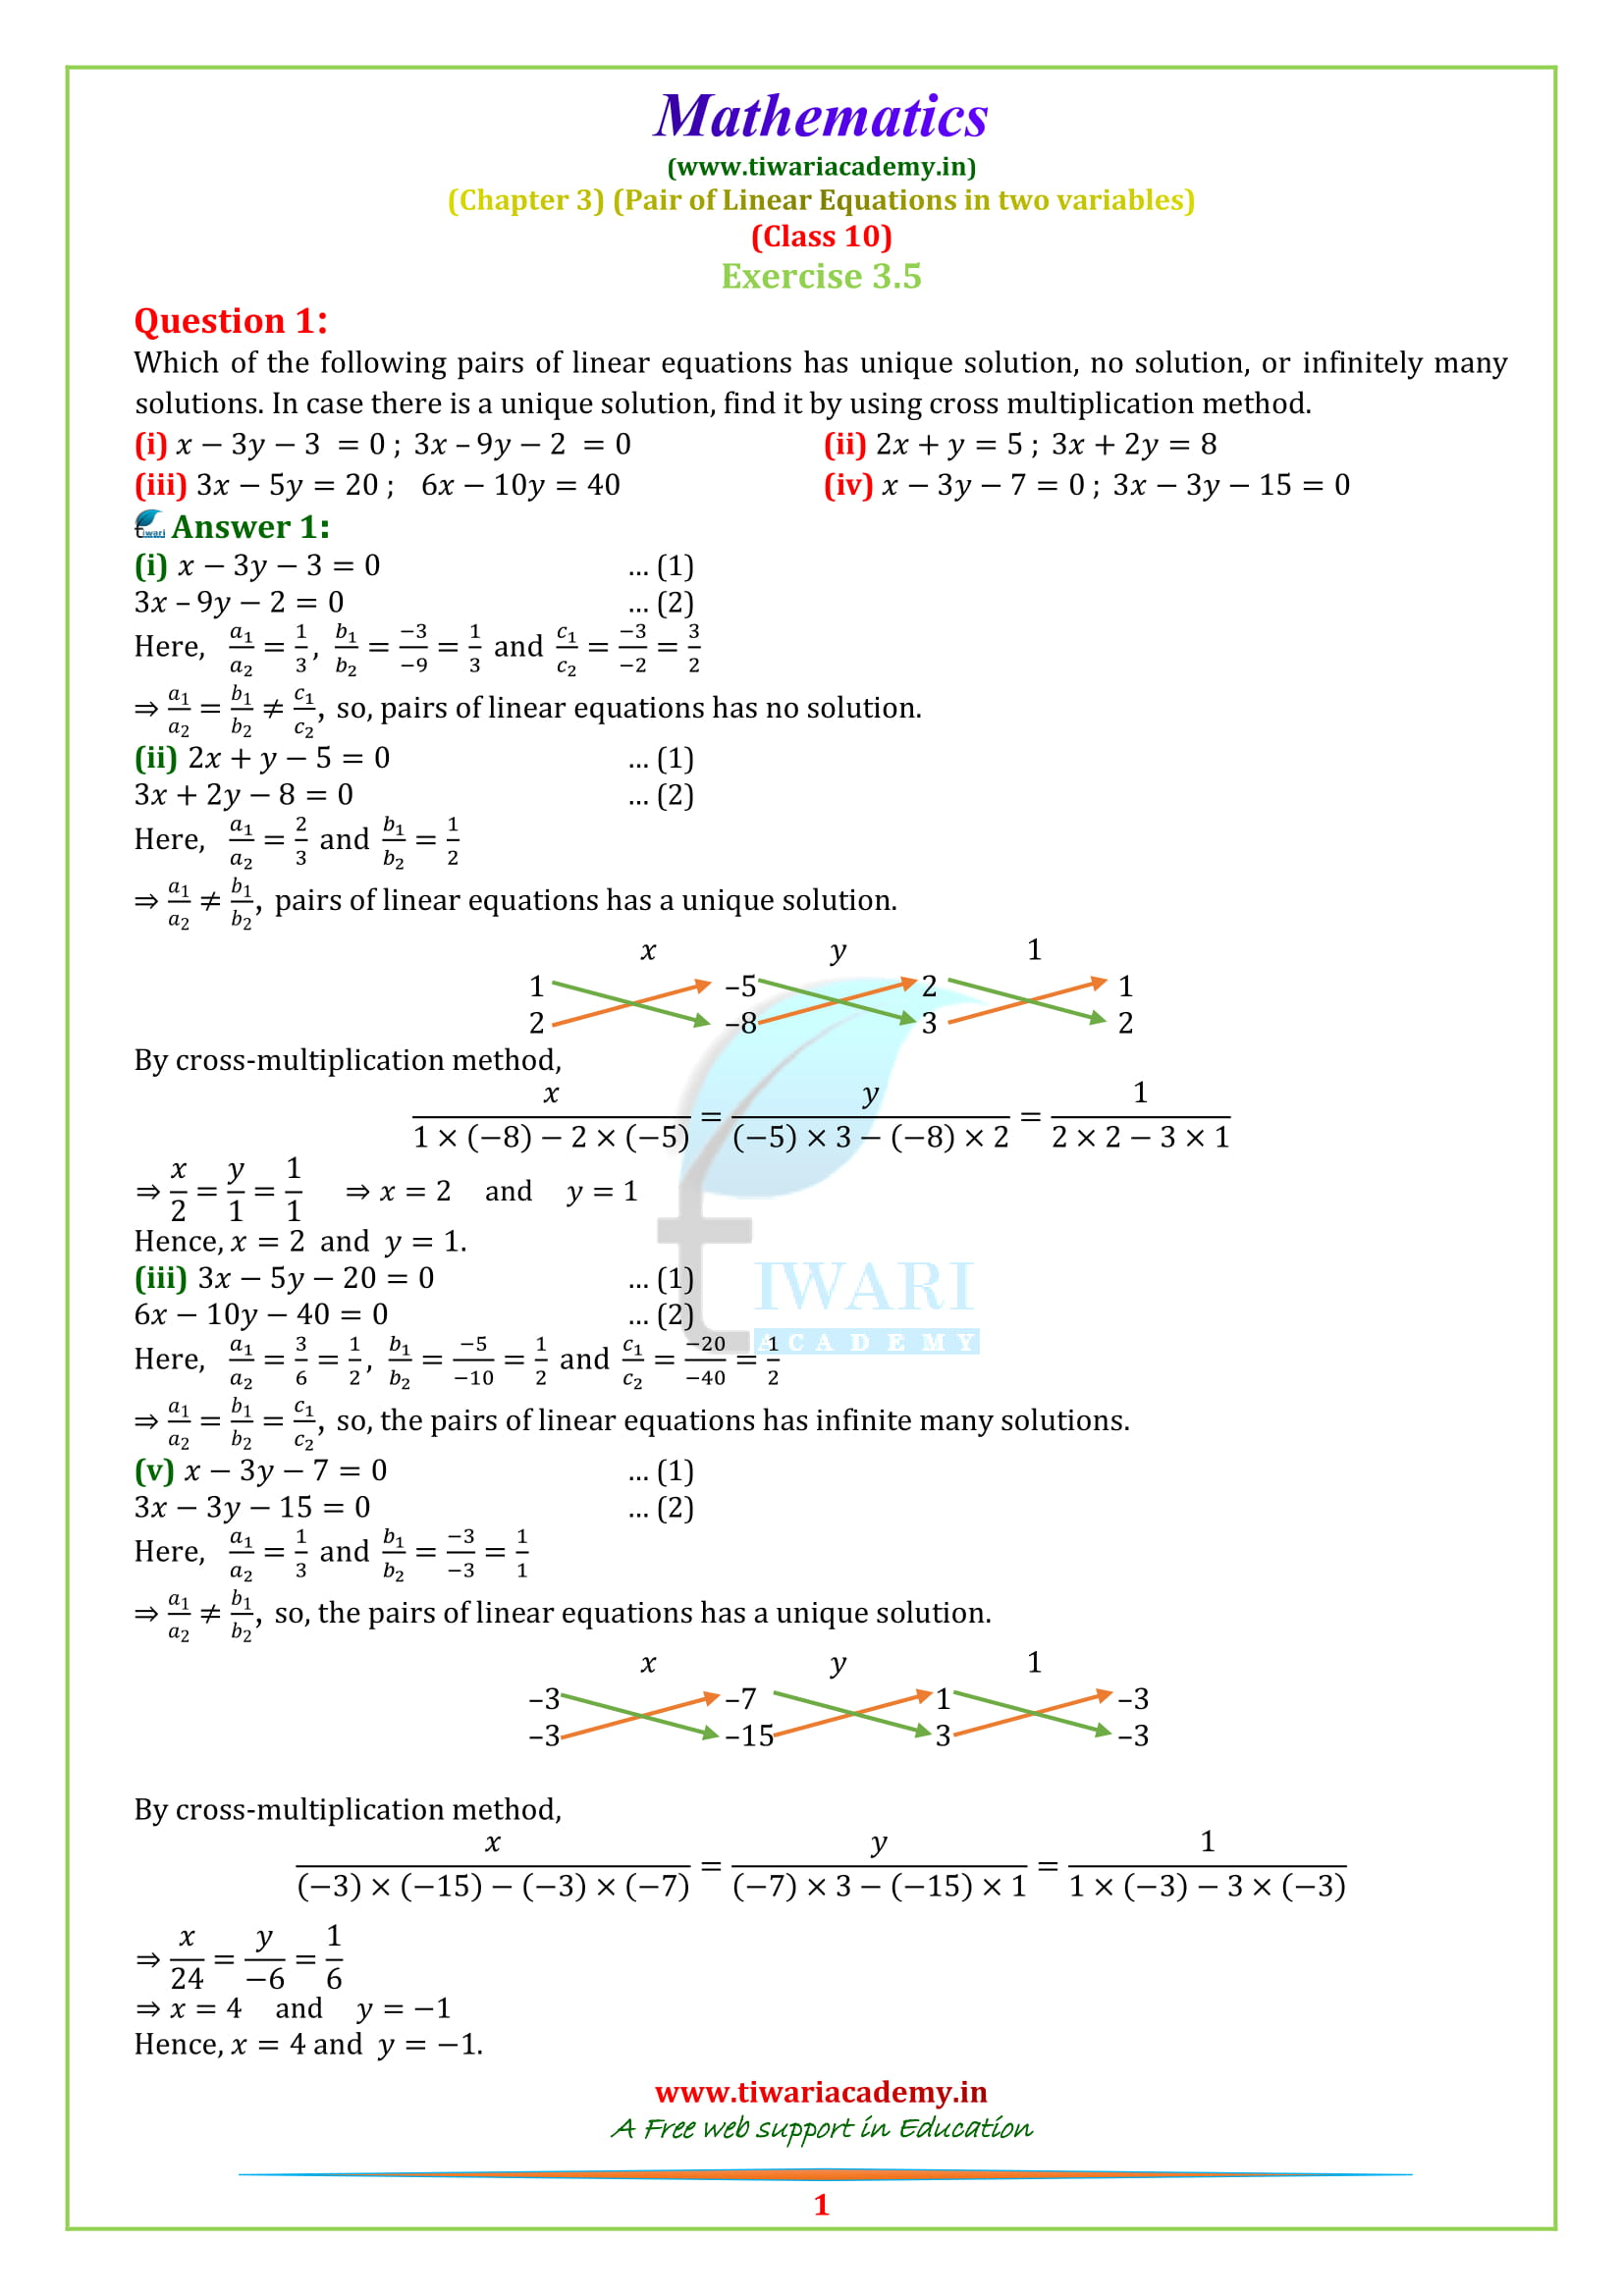 NCERT Solutions for Class 10 Maths Chapter 3 Exercise 3.5 question 1